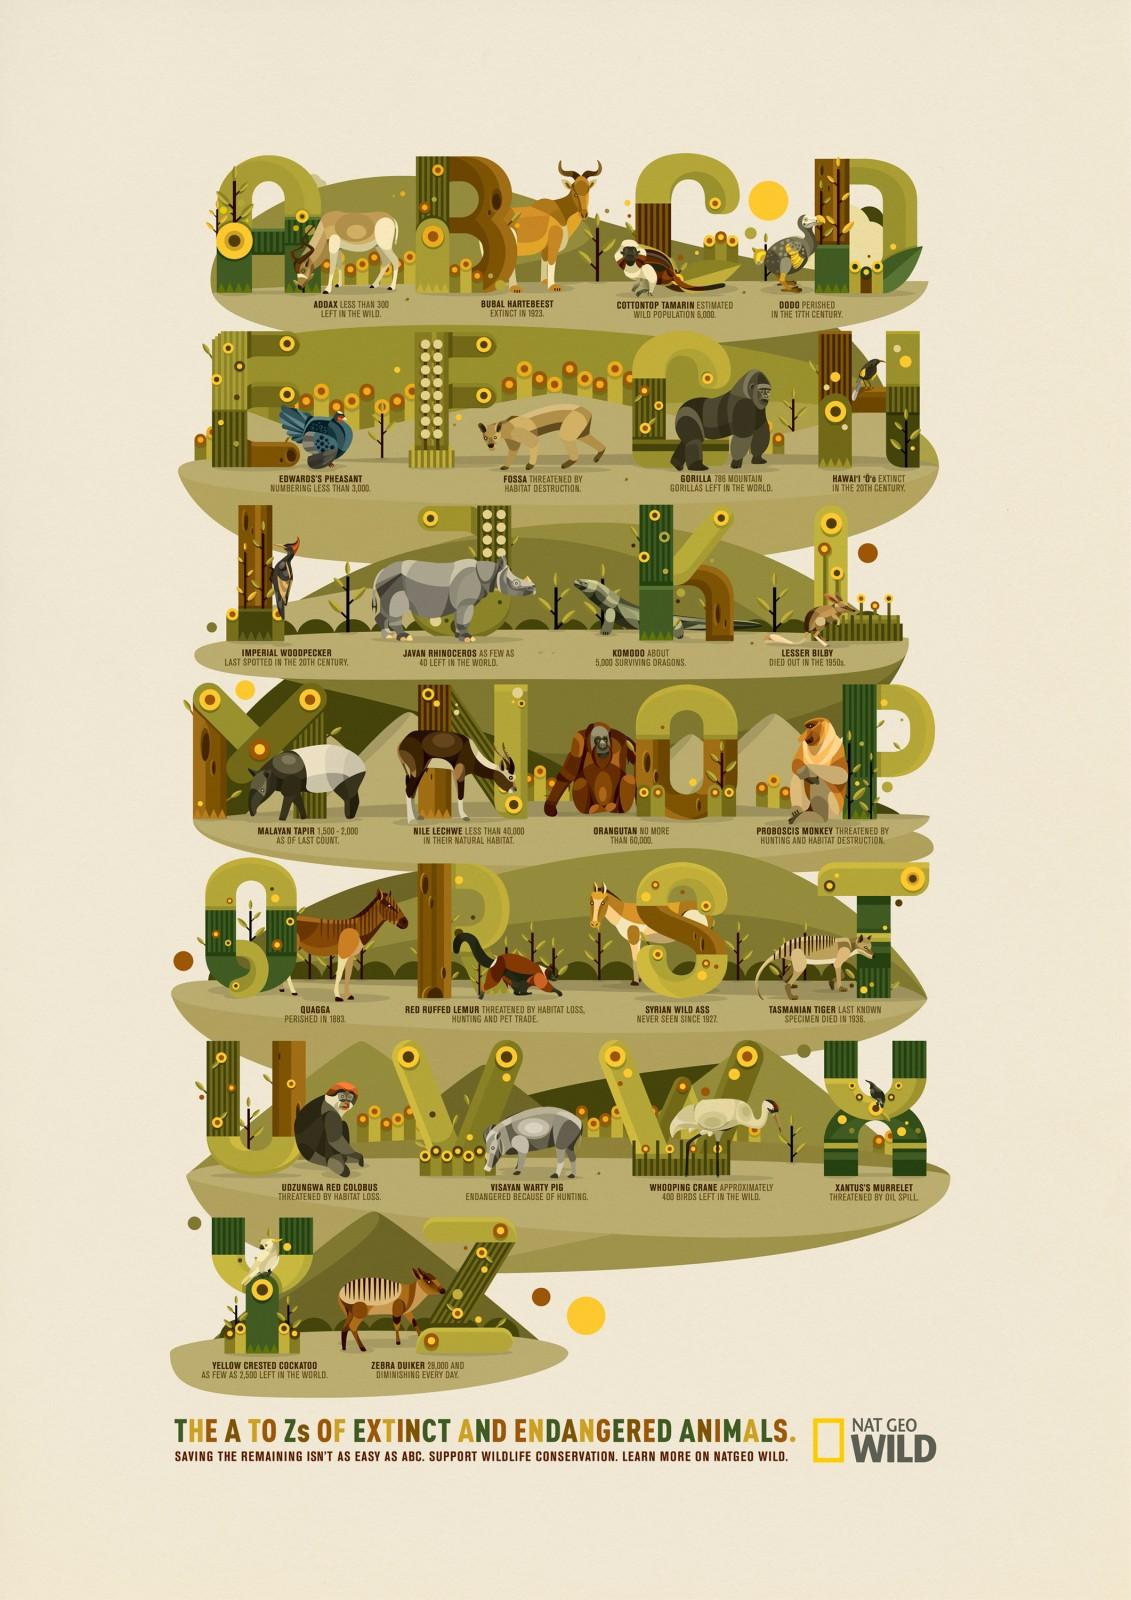 National Geographic Print Ad -  A-Z of Endangered and Extinct Wildlife